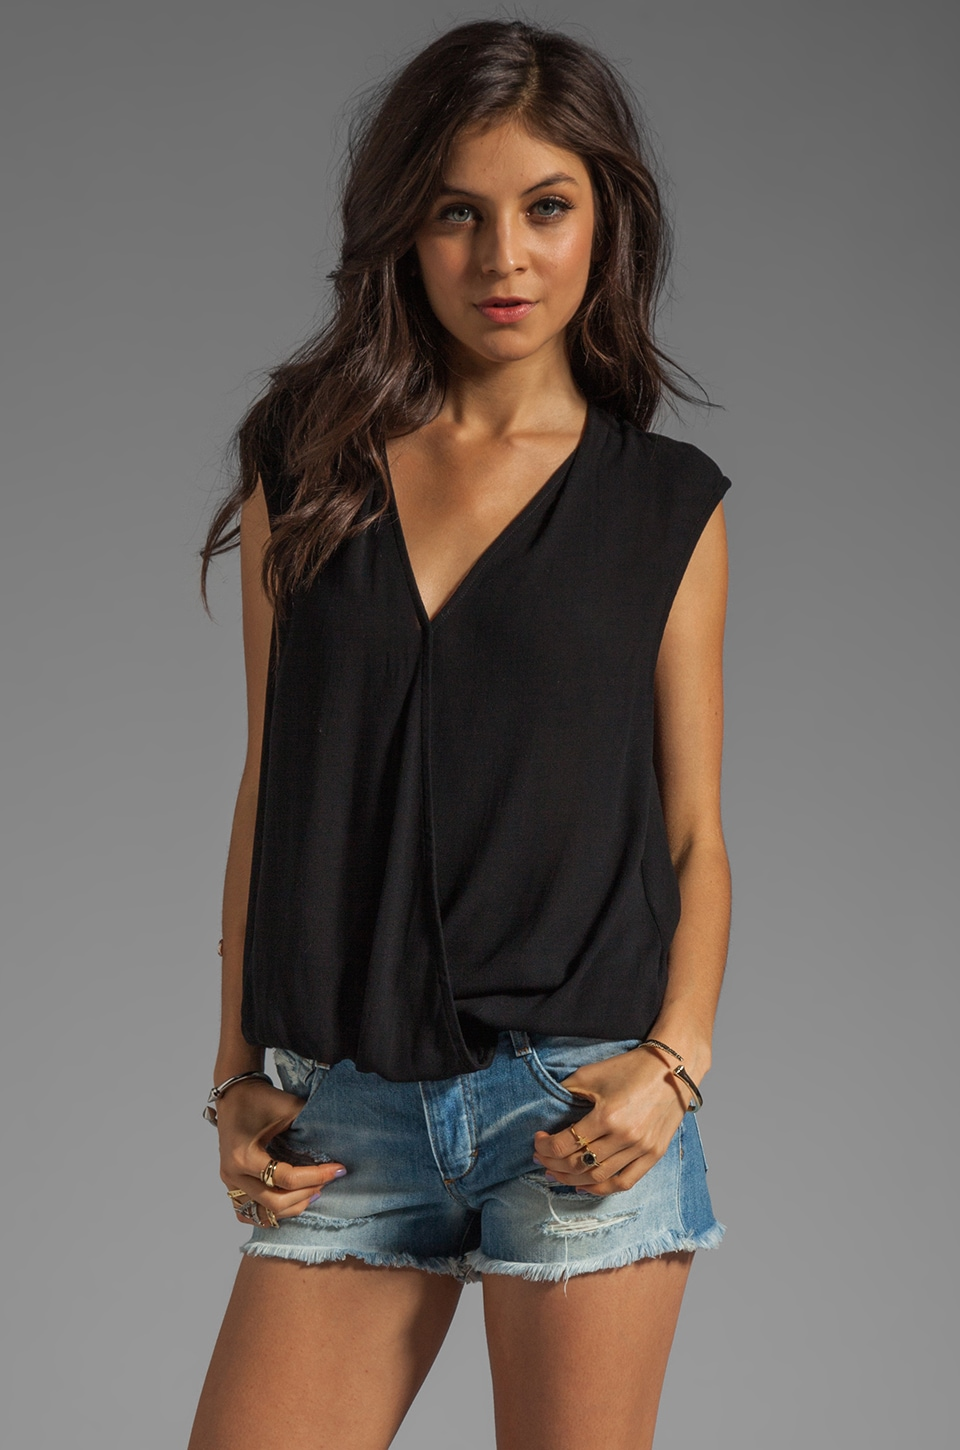 Ella Moss Stella Wrap Top in Black